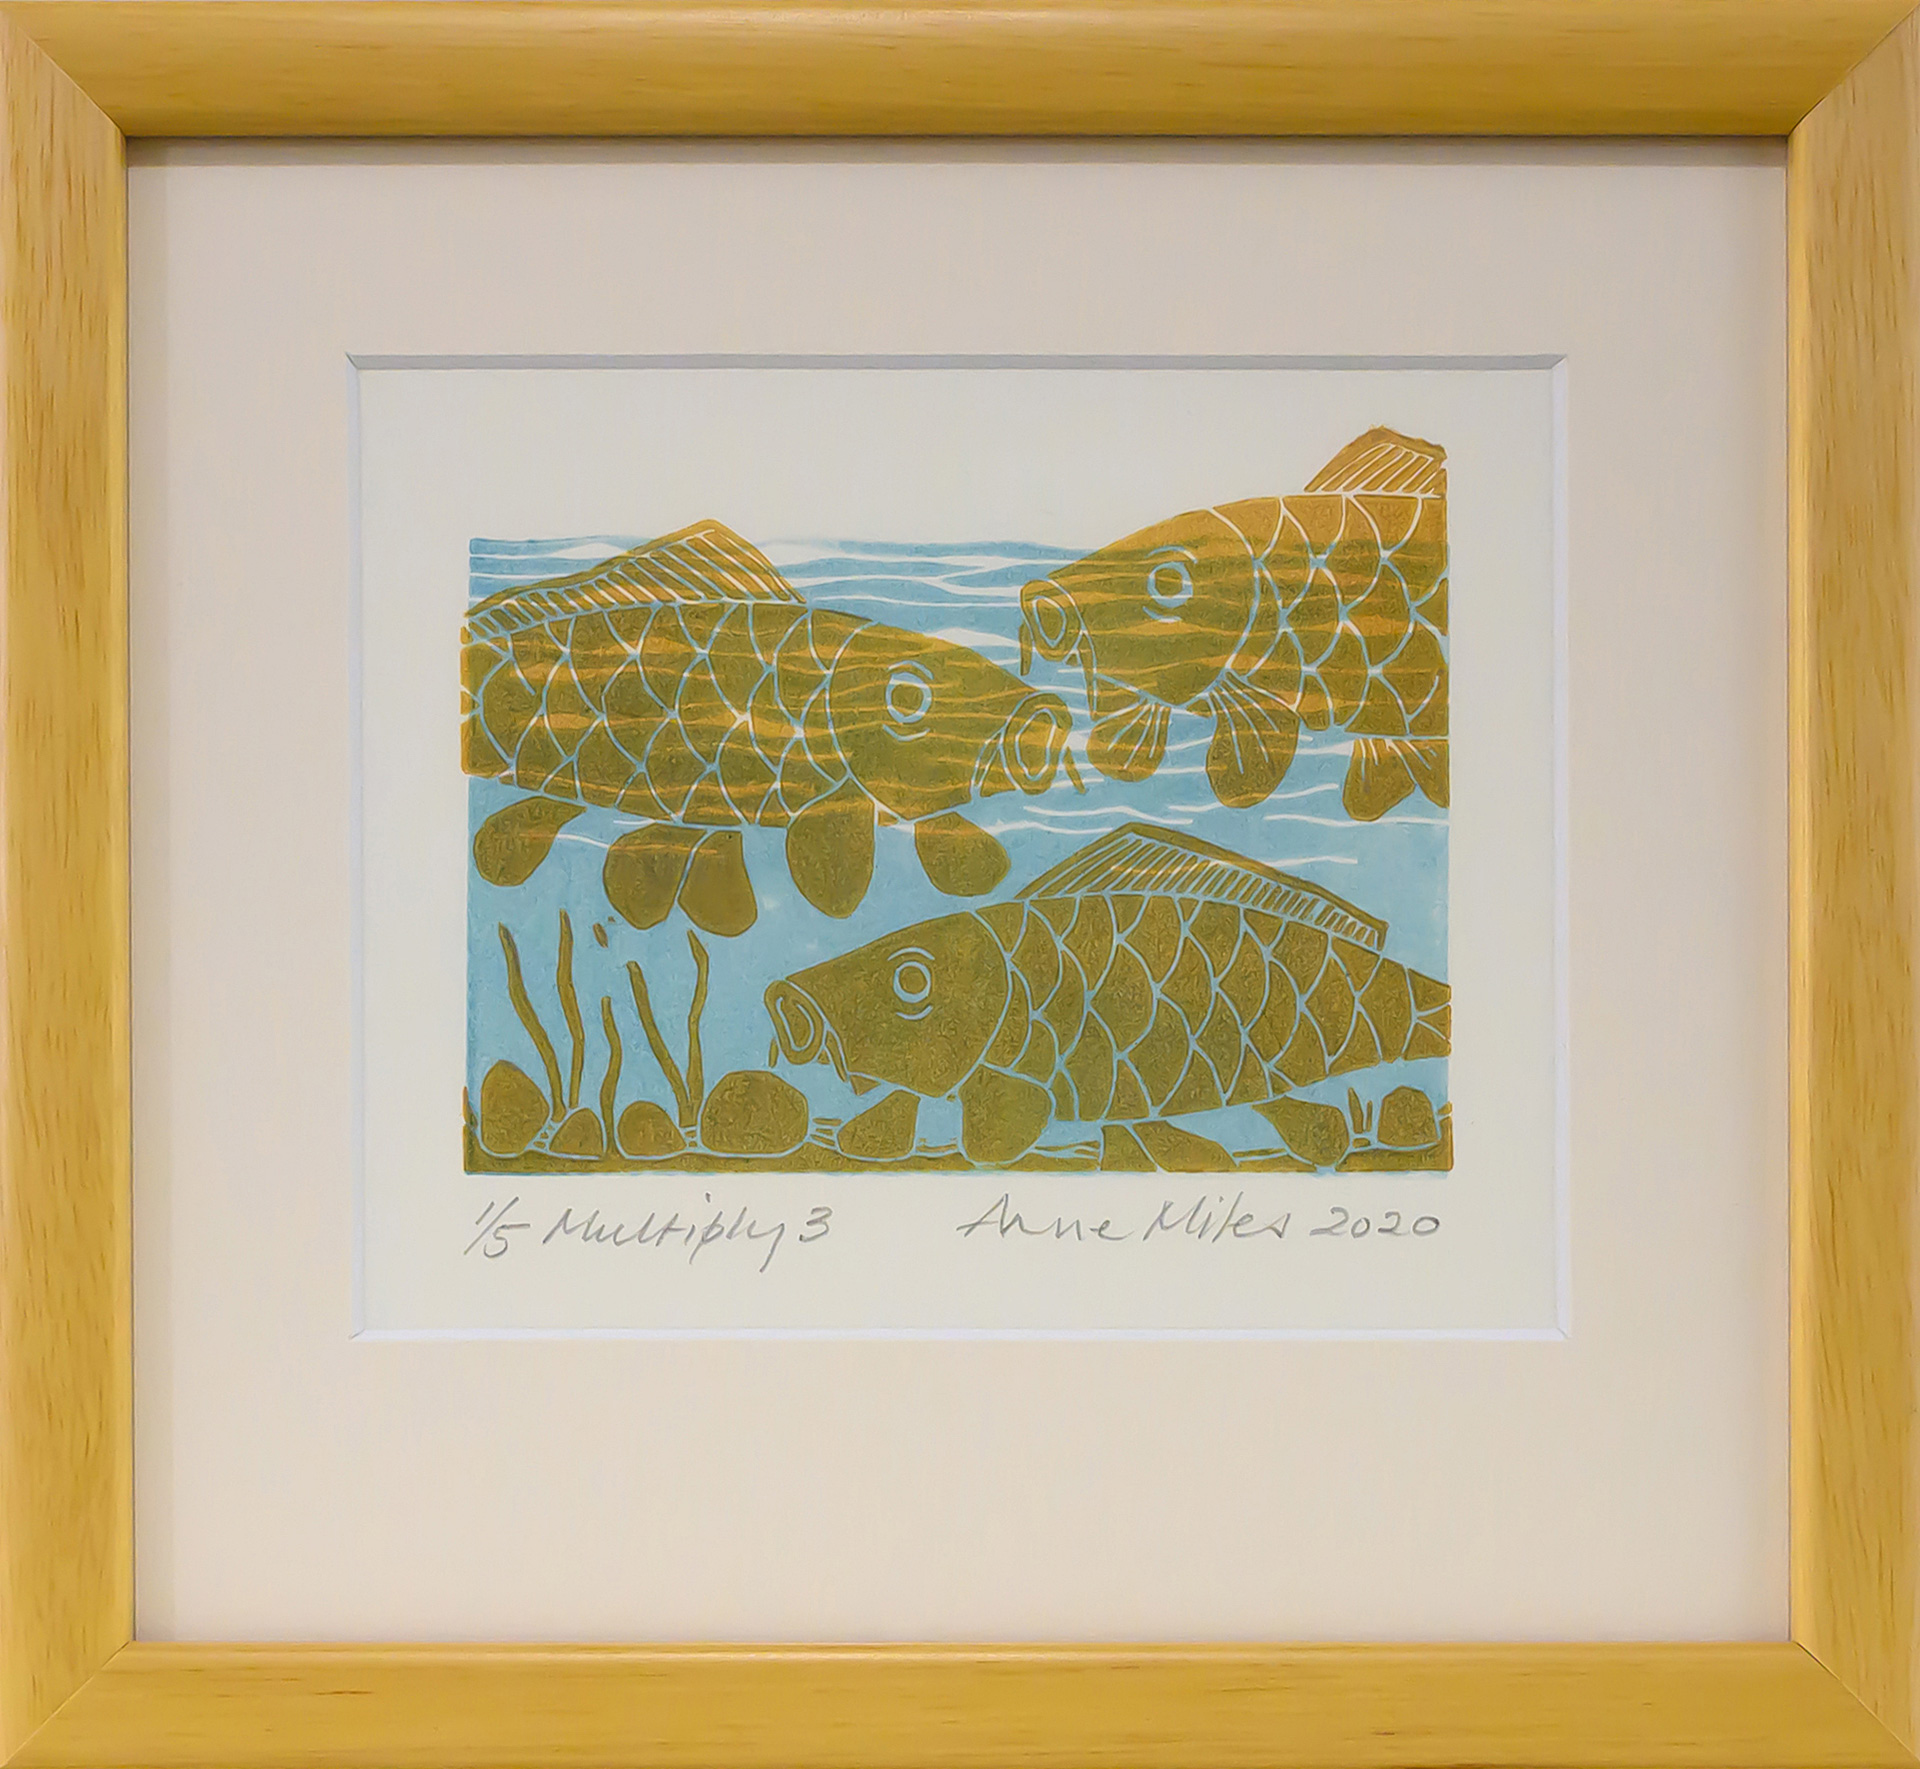 Framed artwork by Anne Miles of 3 yellow Carp with rocks and weeds in a blue water background